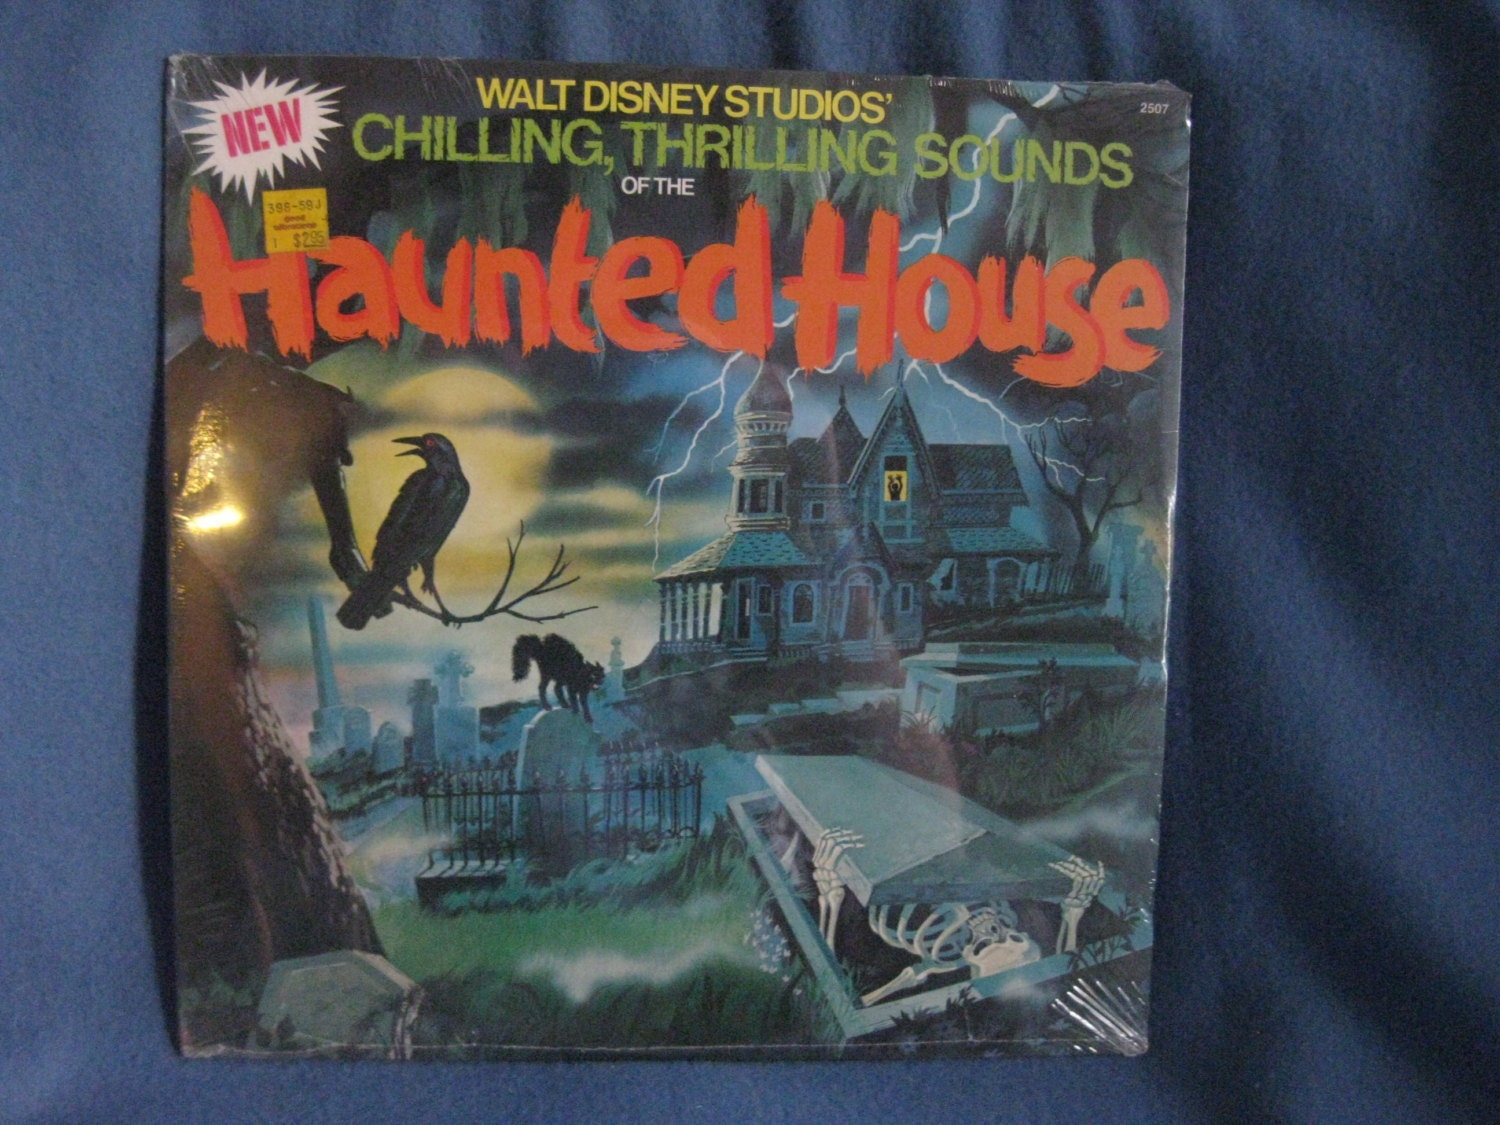 Sealed Vintage New Chilling Thrilling Sounds Of By